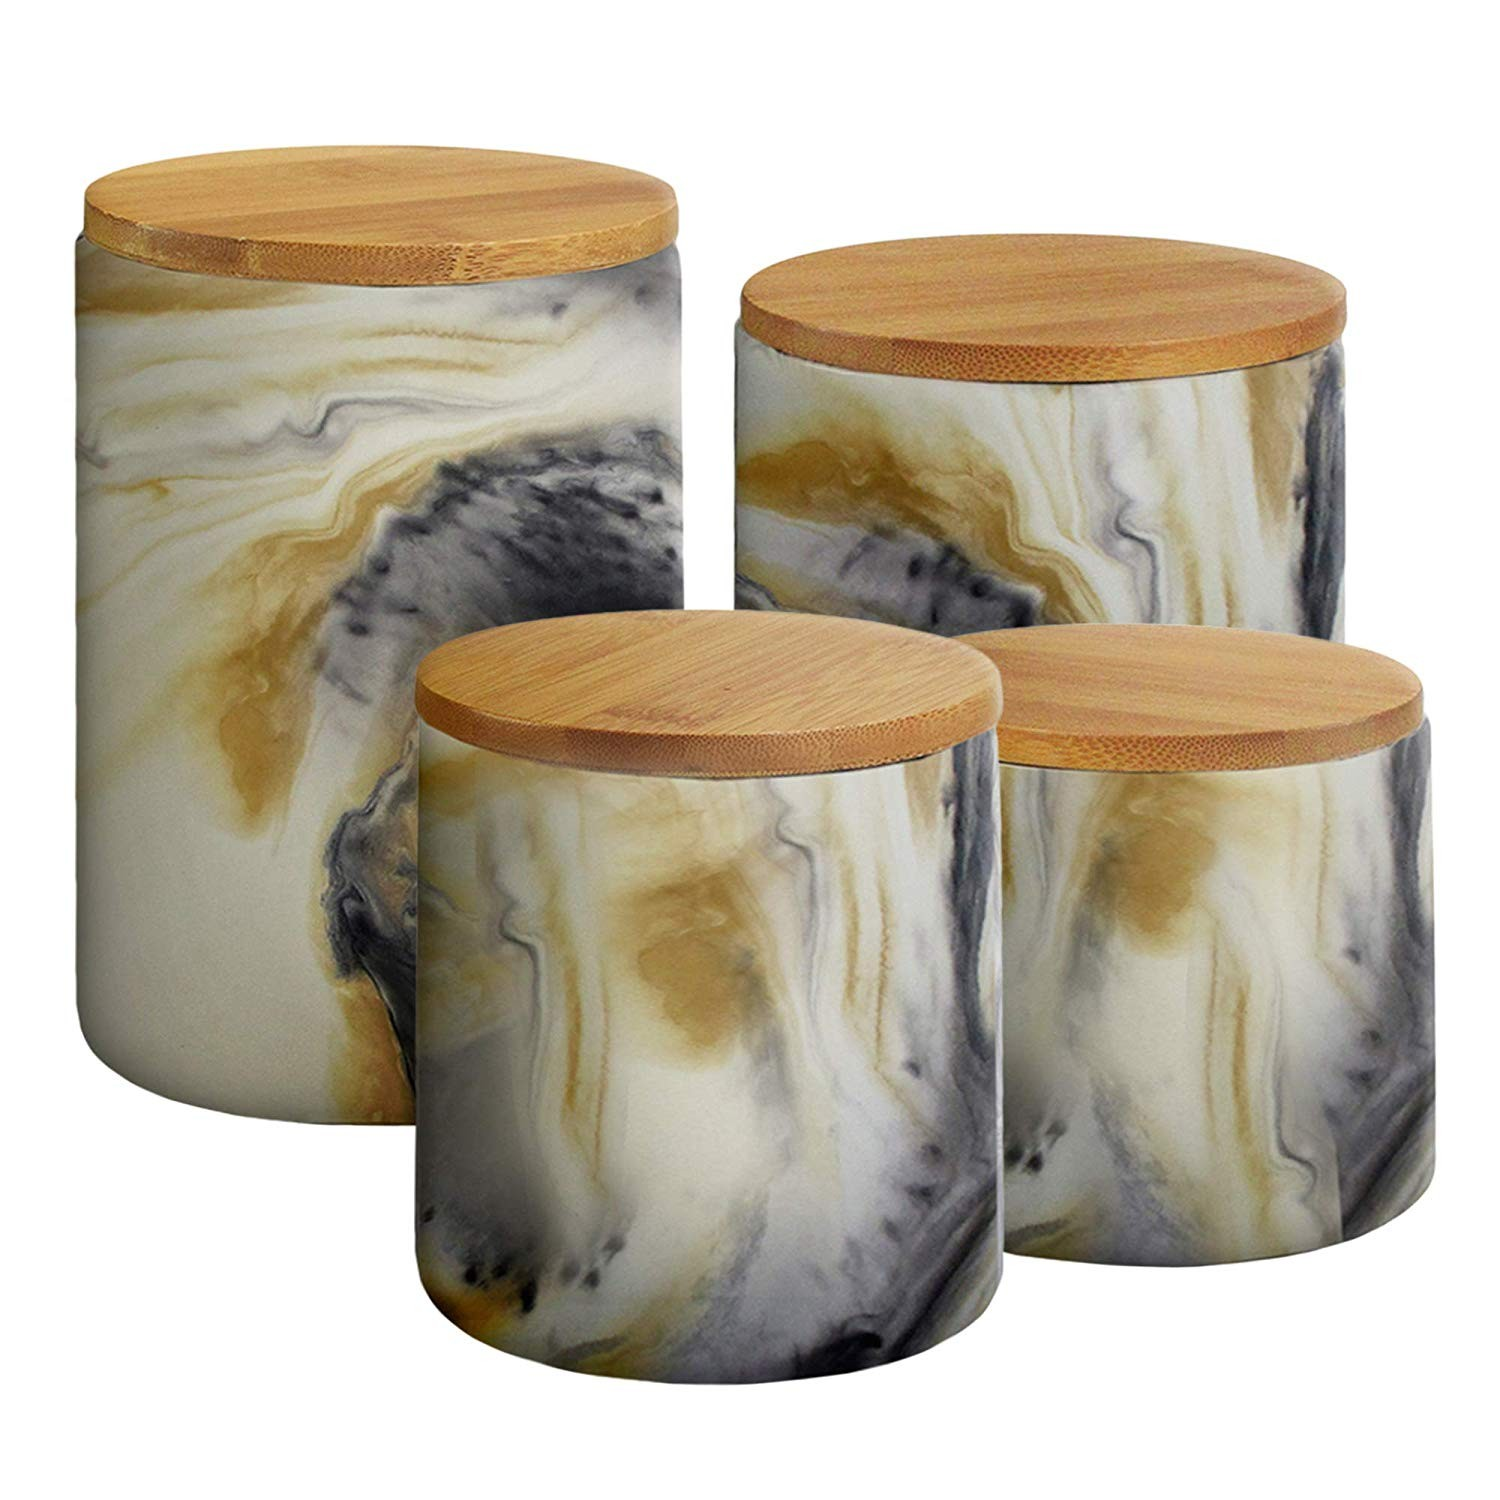 "American Atelier 1562505CANRB Marble 4 Piece Ceramic Canister Set with Lids, 17.2"" x 4.3"" x 5.9"", Gray"